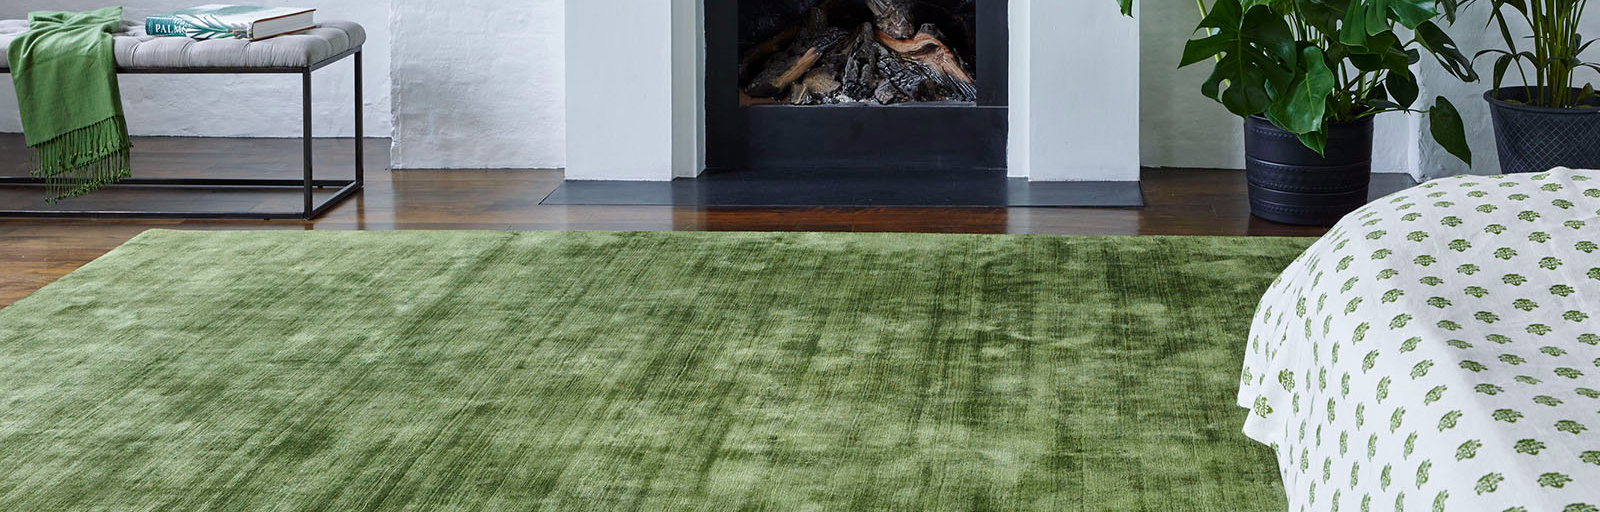 A luxurious Satara rug in moss green,fr om Jacaranda Carpets and available from Flooring 4 You Ltd